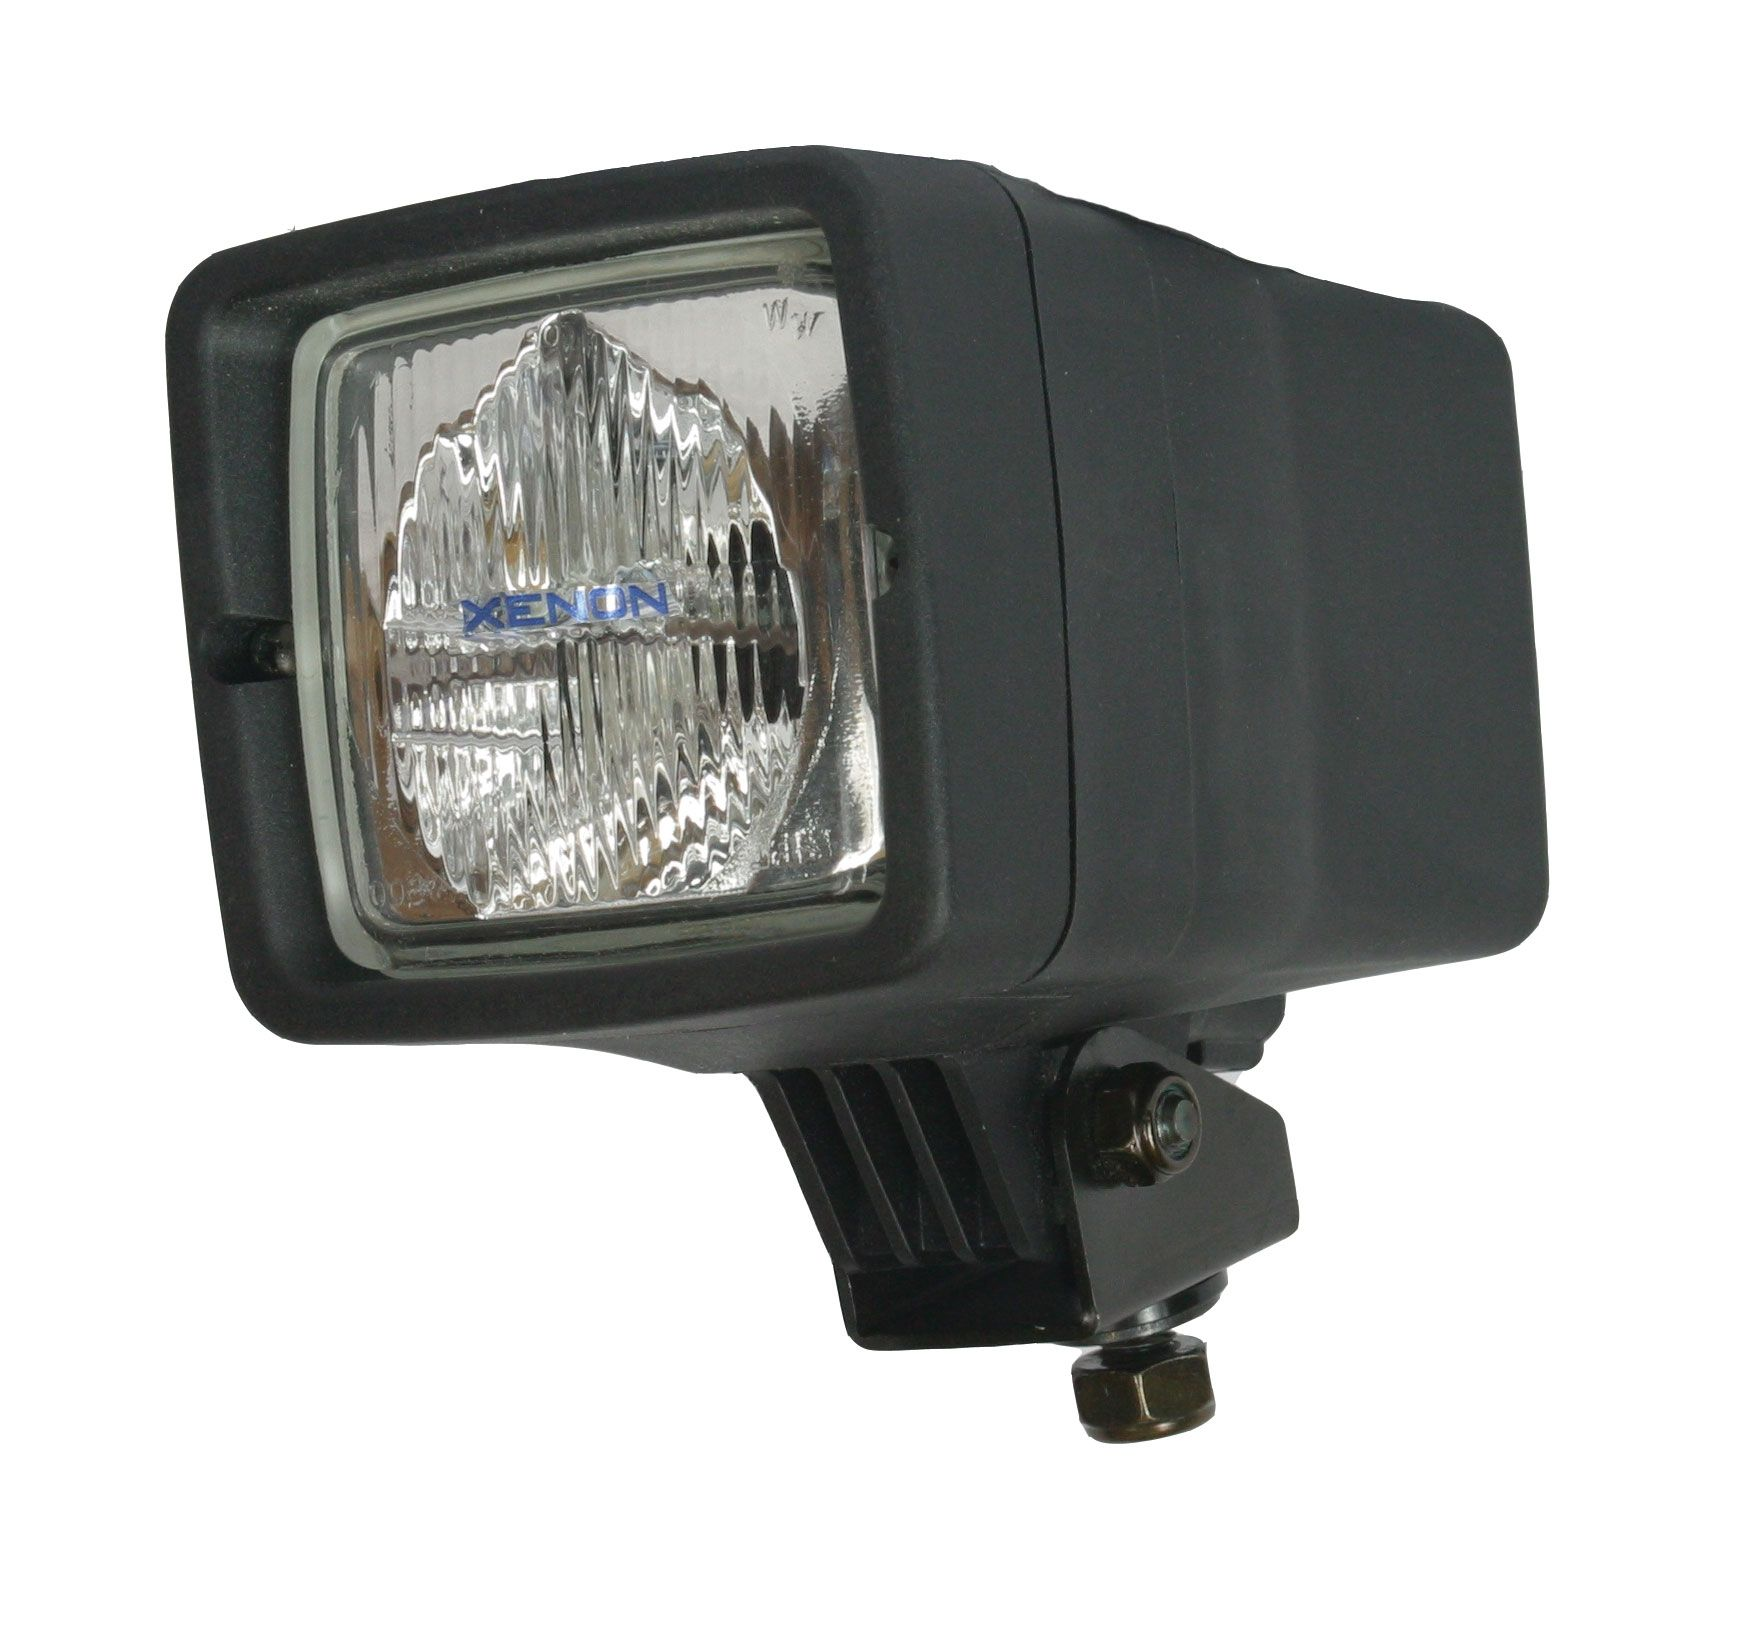 24 volt led marine flood lights httpscartclub pinterest 24 volt led marine flood lights arubaitofo Image collections